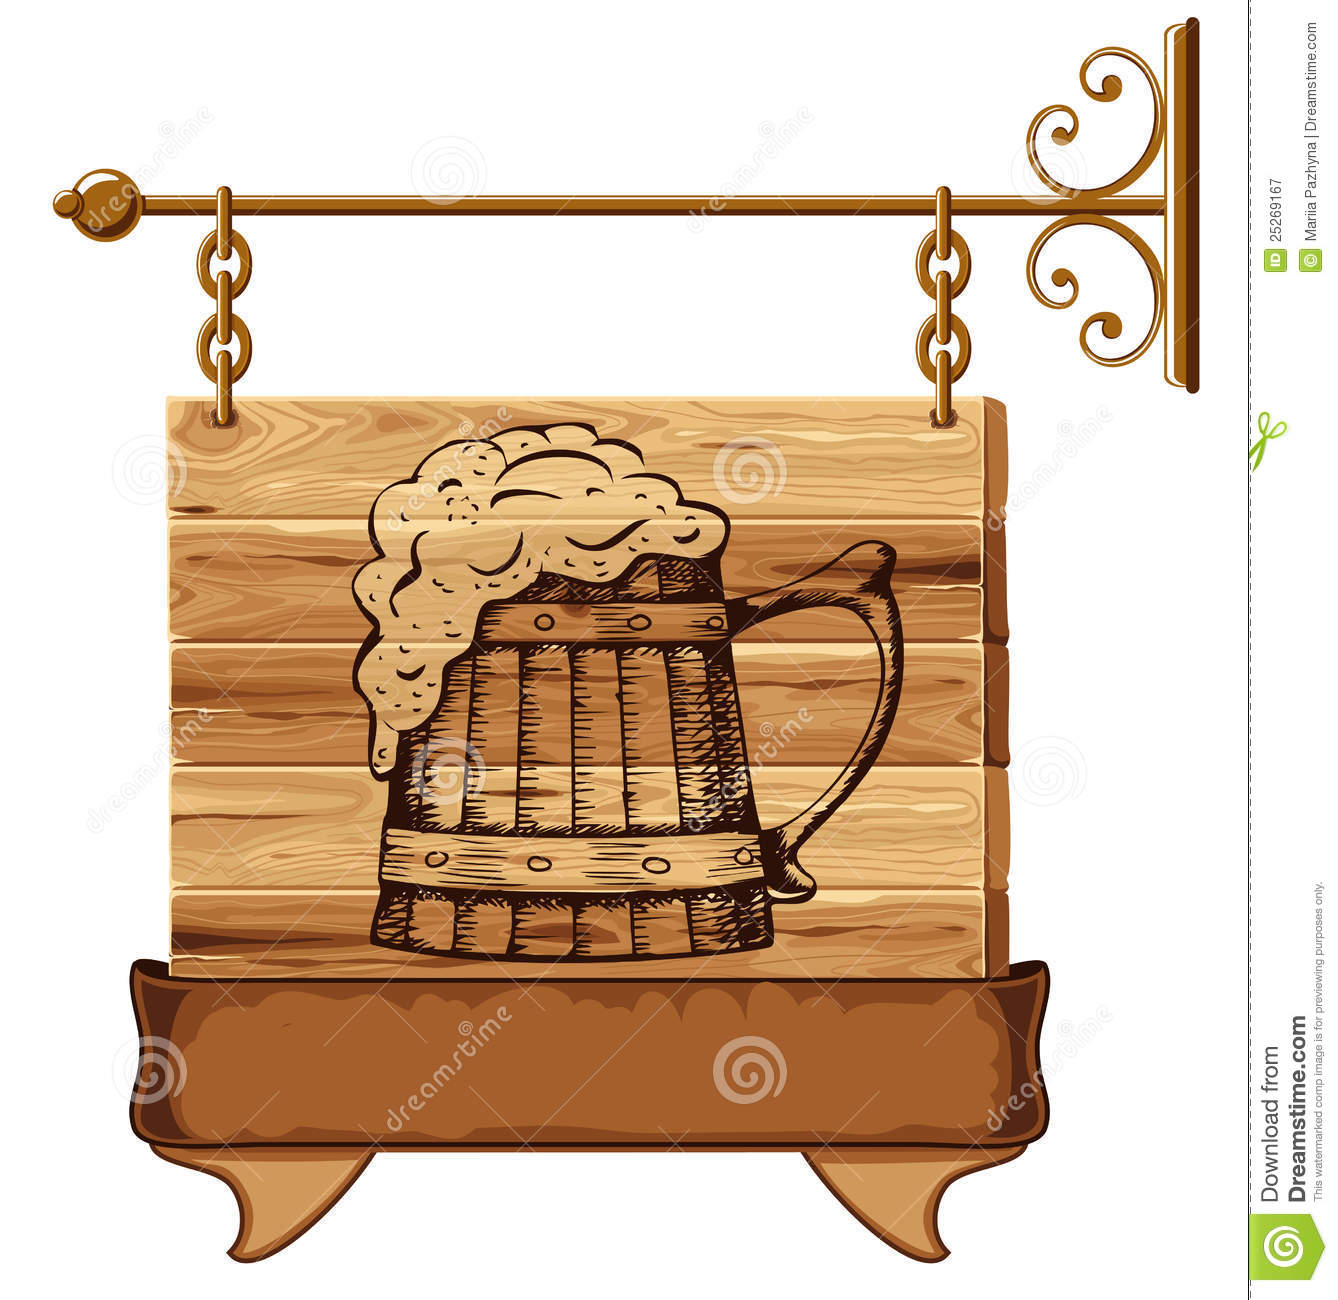 Wooden Pub Sign Royalty Free Stock Photography Image